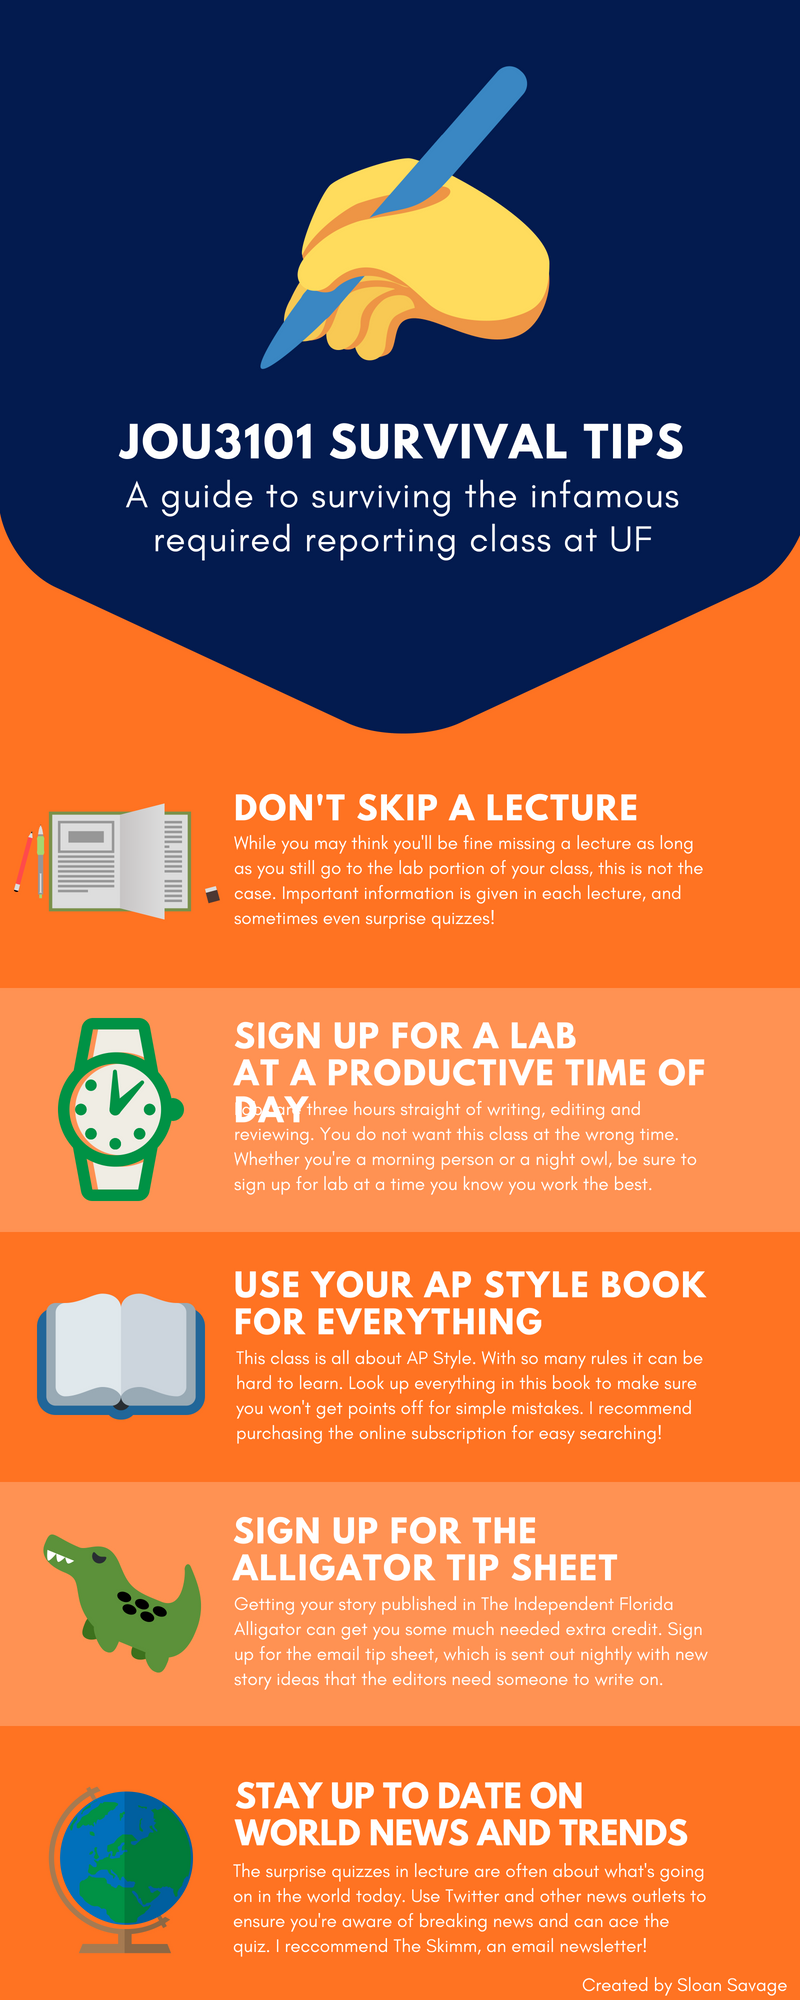 Surviving JOU3101 at UF — an infographic guide to UF's